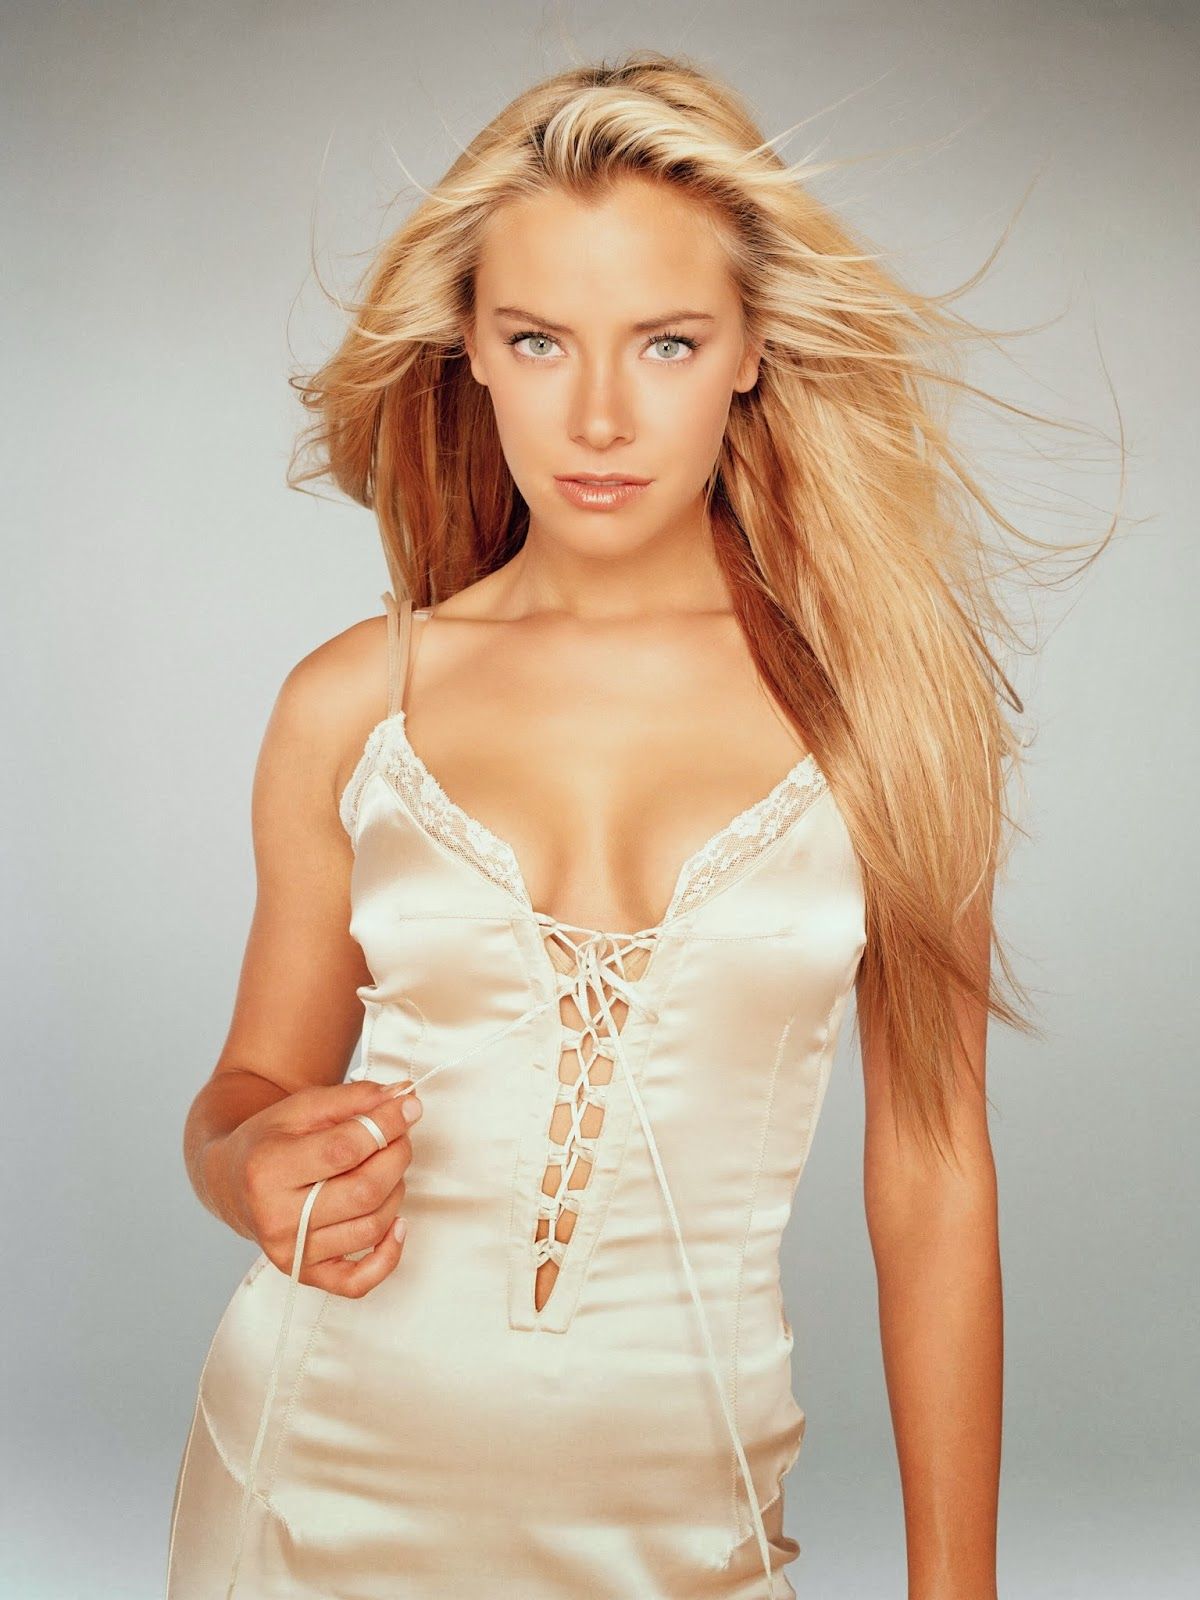 Cleavage Kristanna Loken nudes (61 foto and video), Pussy, Is a cute, Selfie, butt 2015